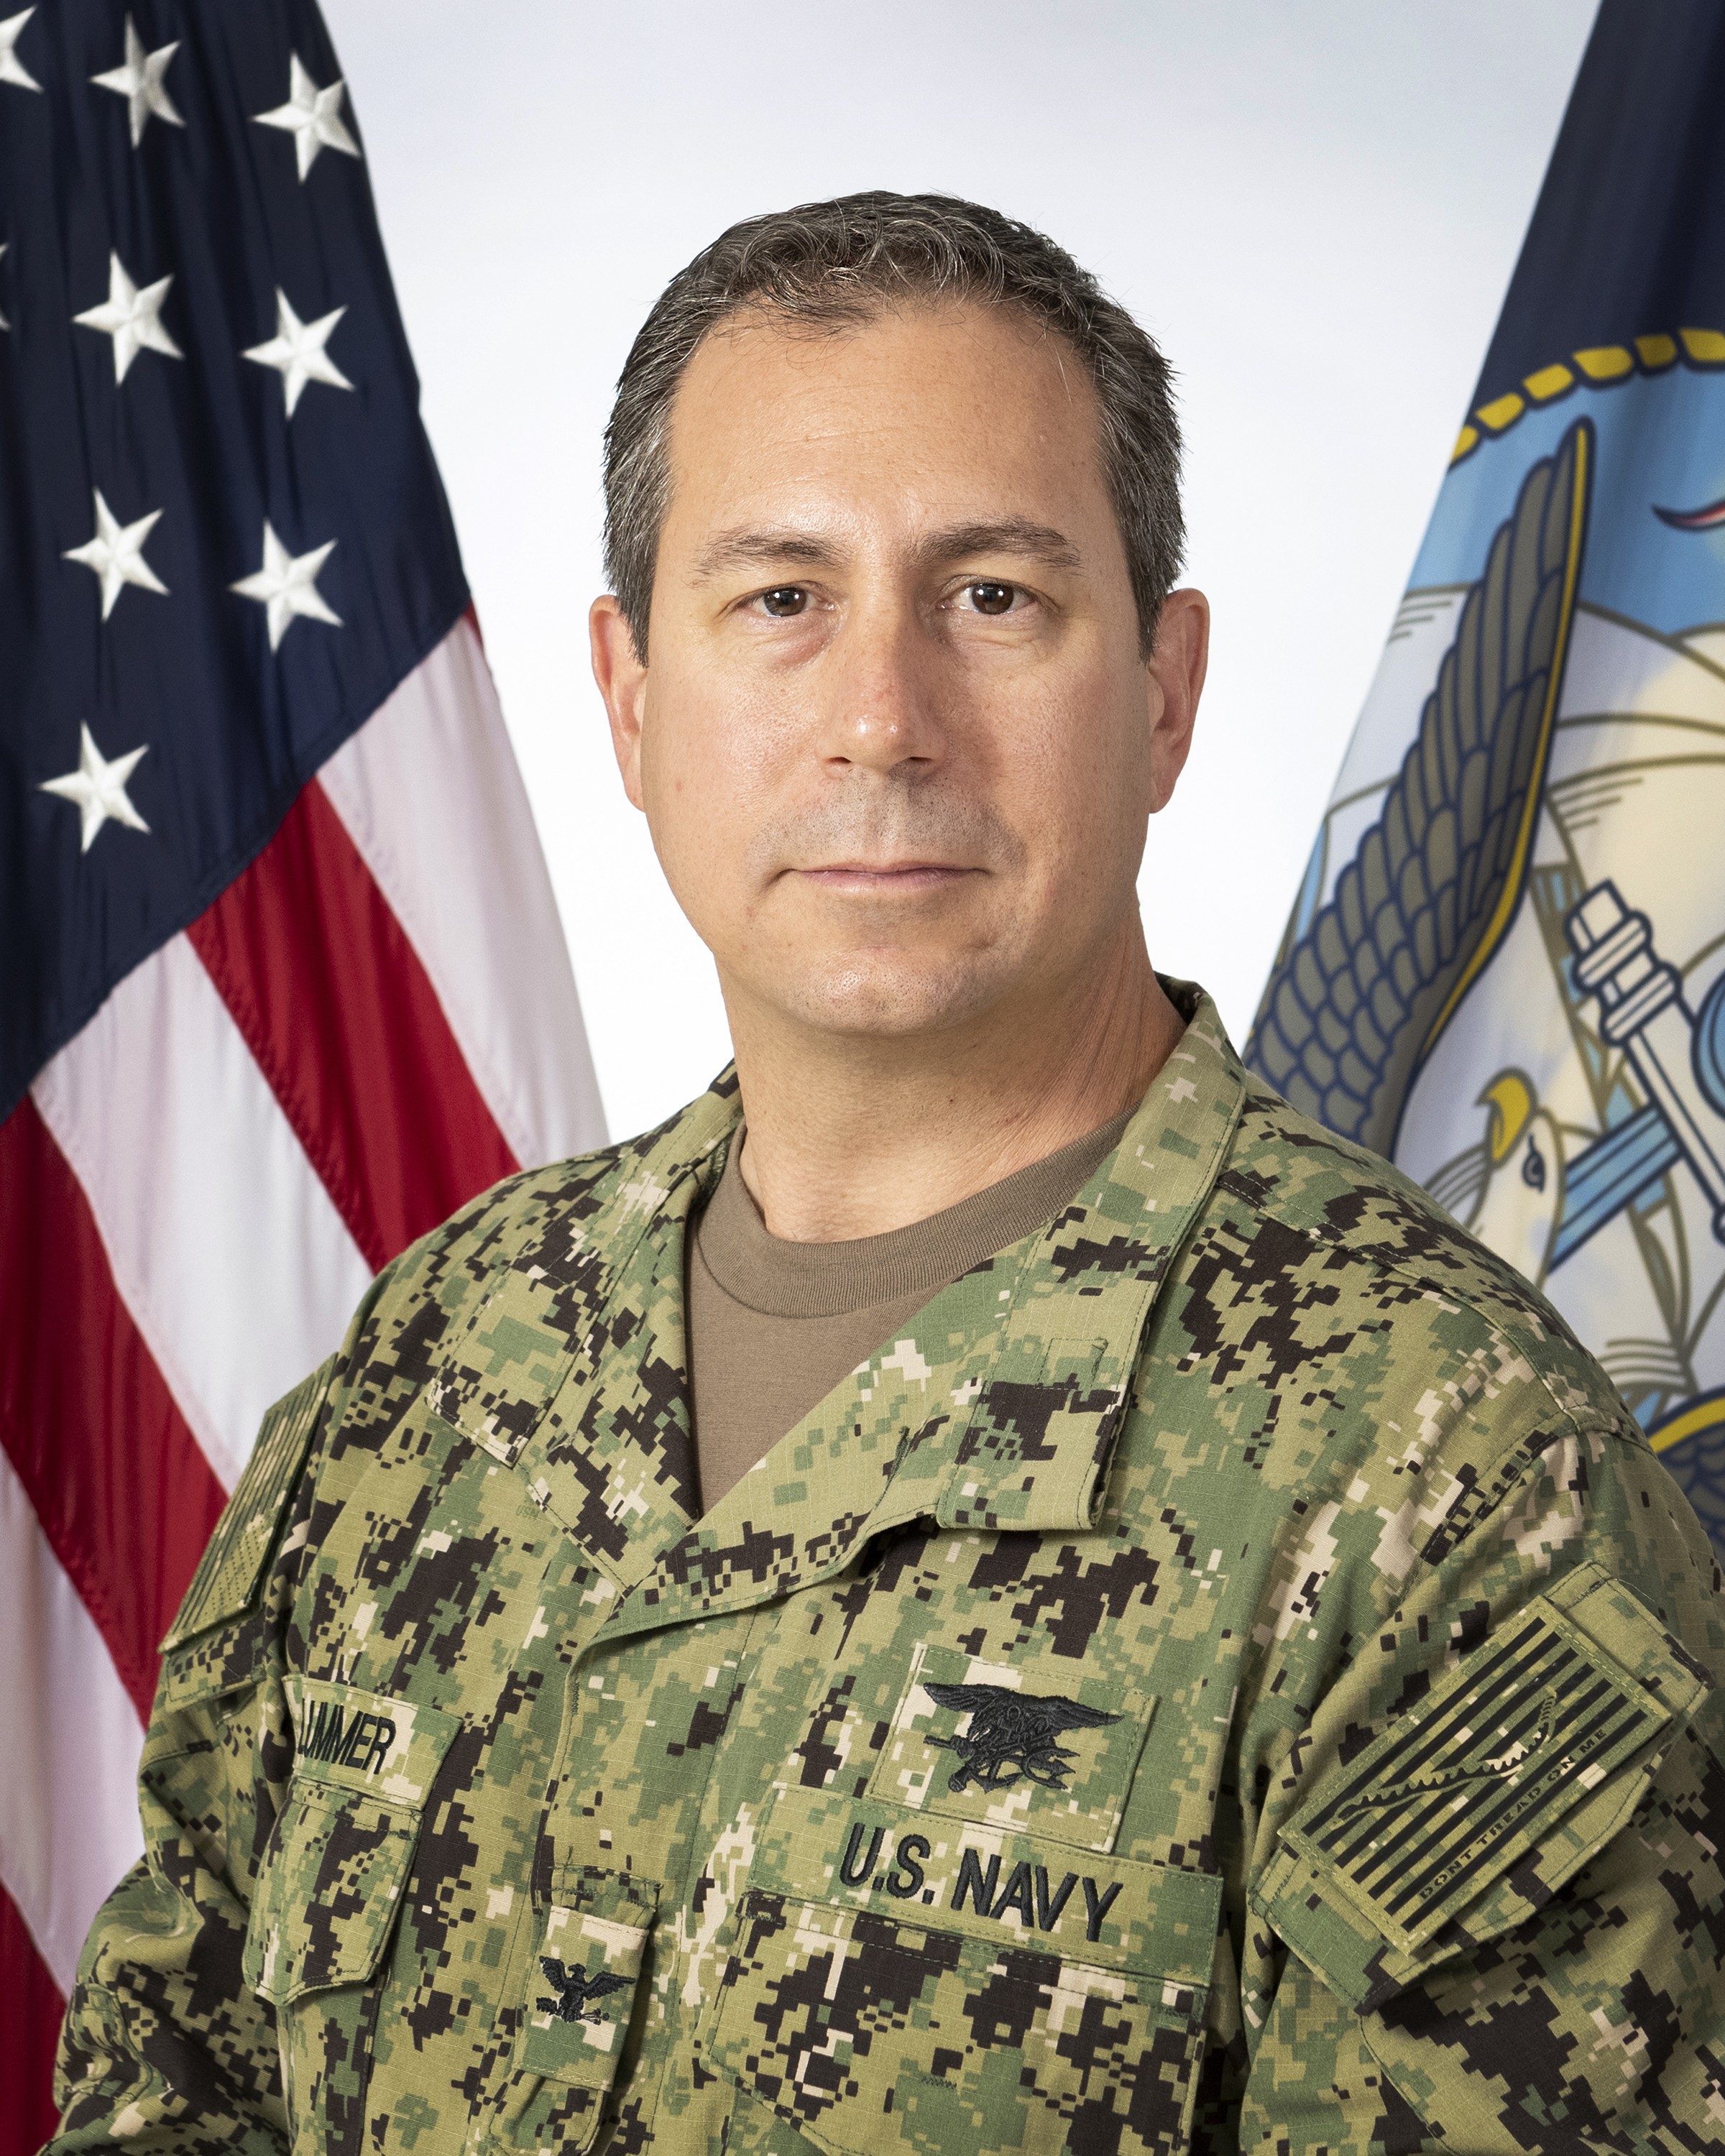 CJTF-HOA Chief of Staff Biography